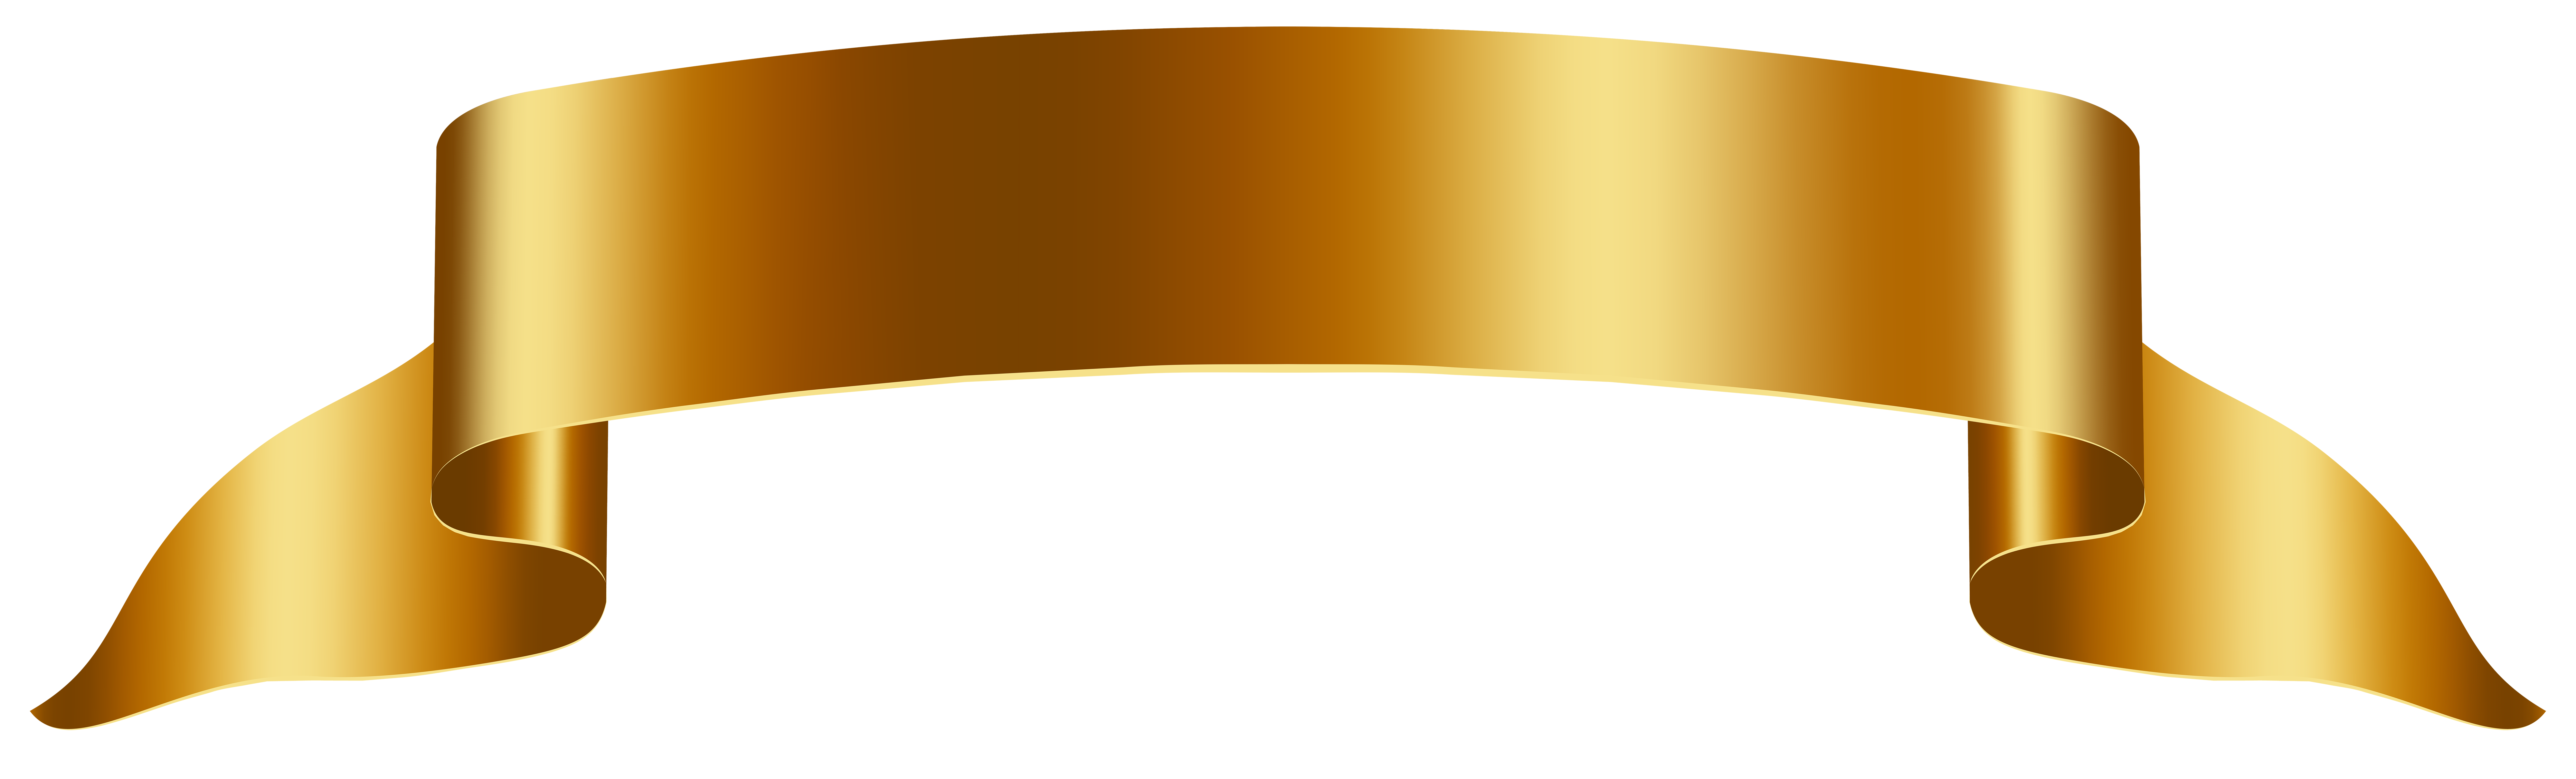 Gold png clip art. Clipart free banner